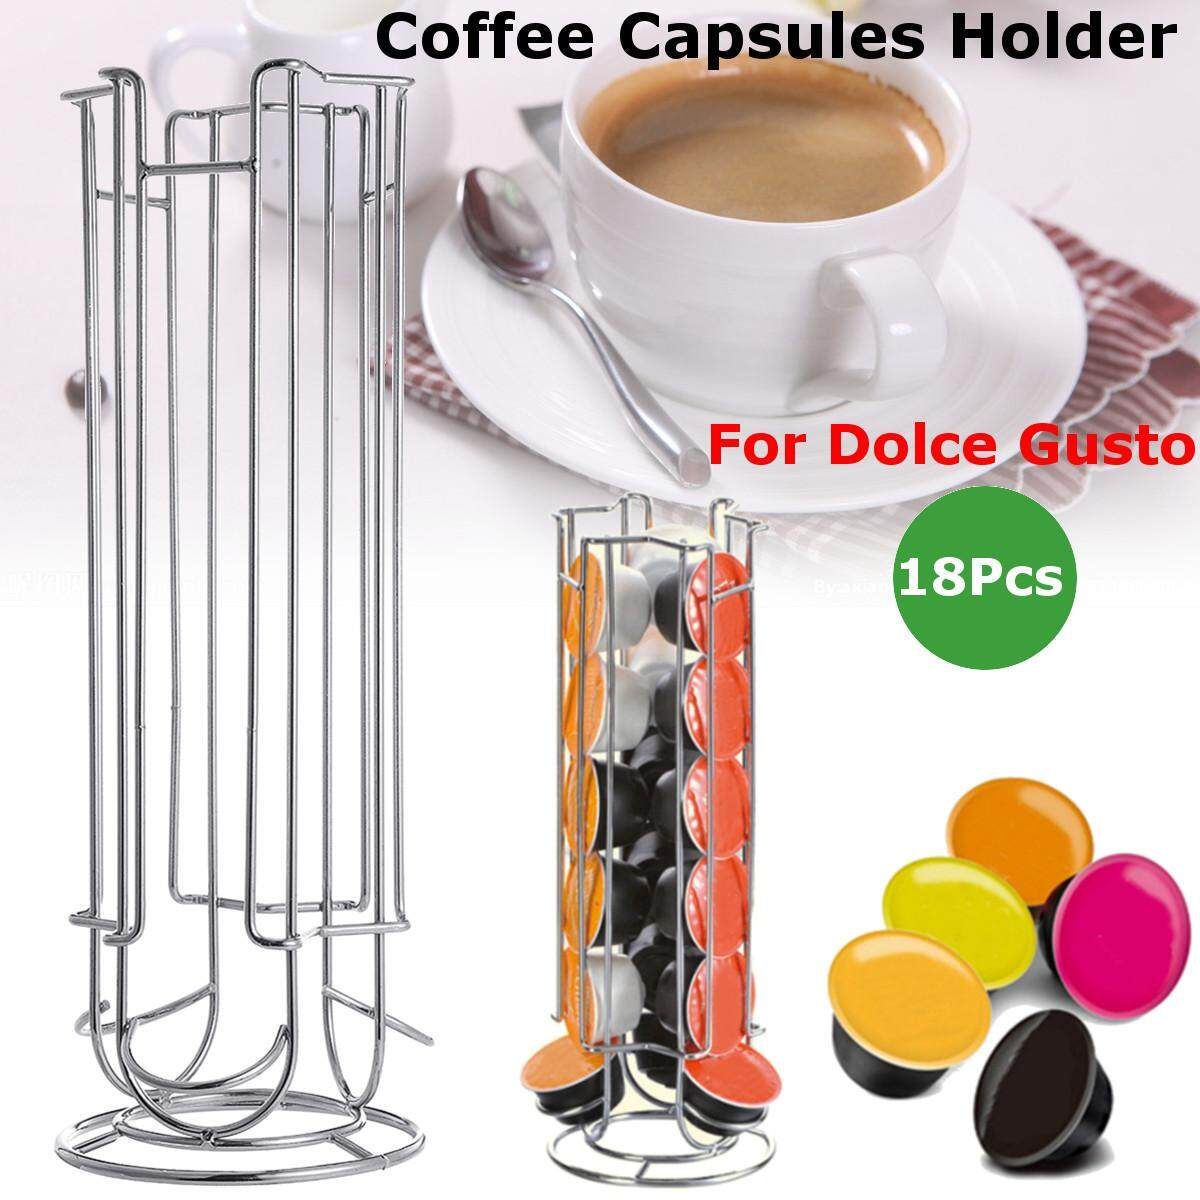 18 Coffee Capsules Pod Holder Stand Dispenser Rack Storage Capsule For Dolce Gusto By Glimmer.